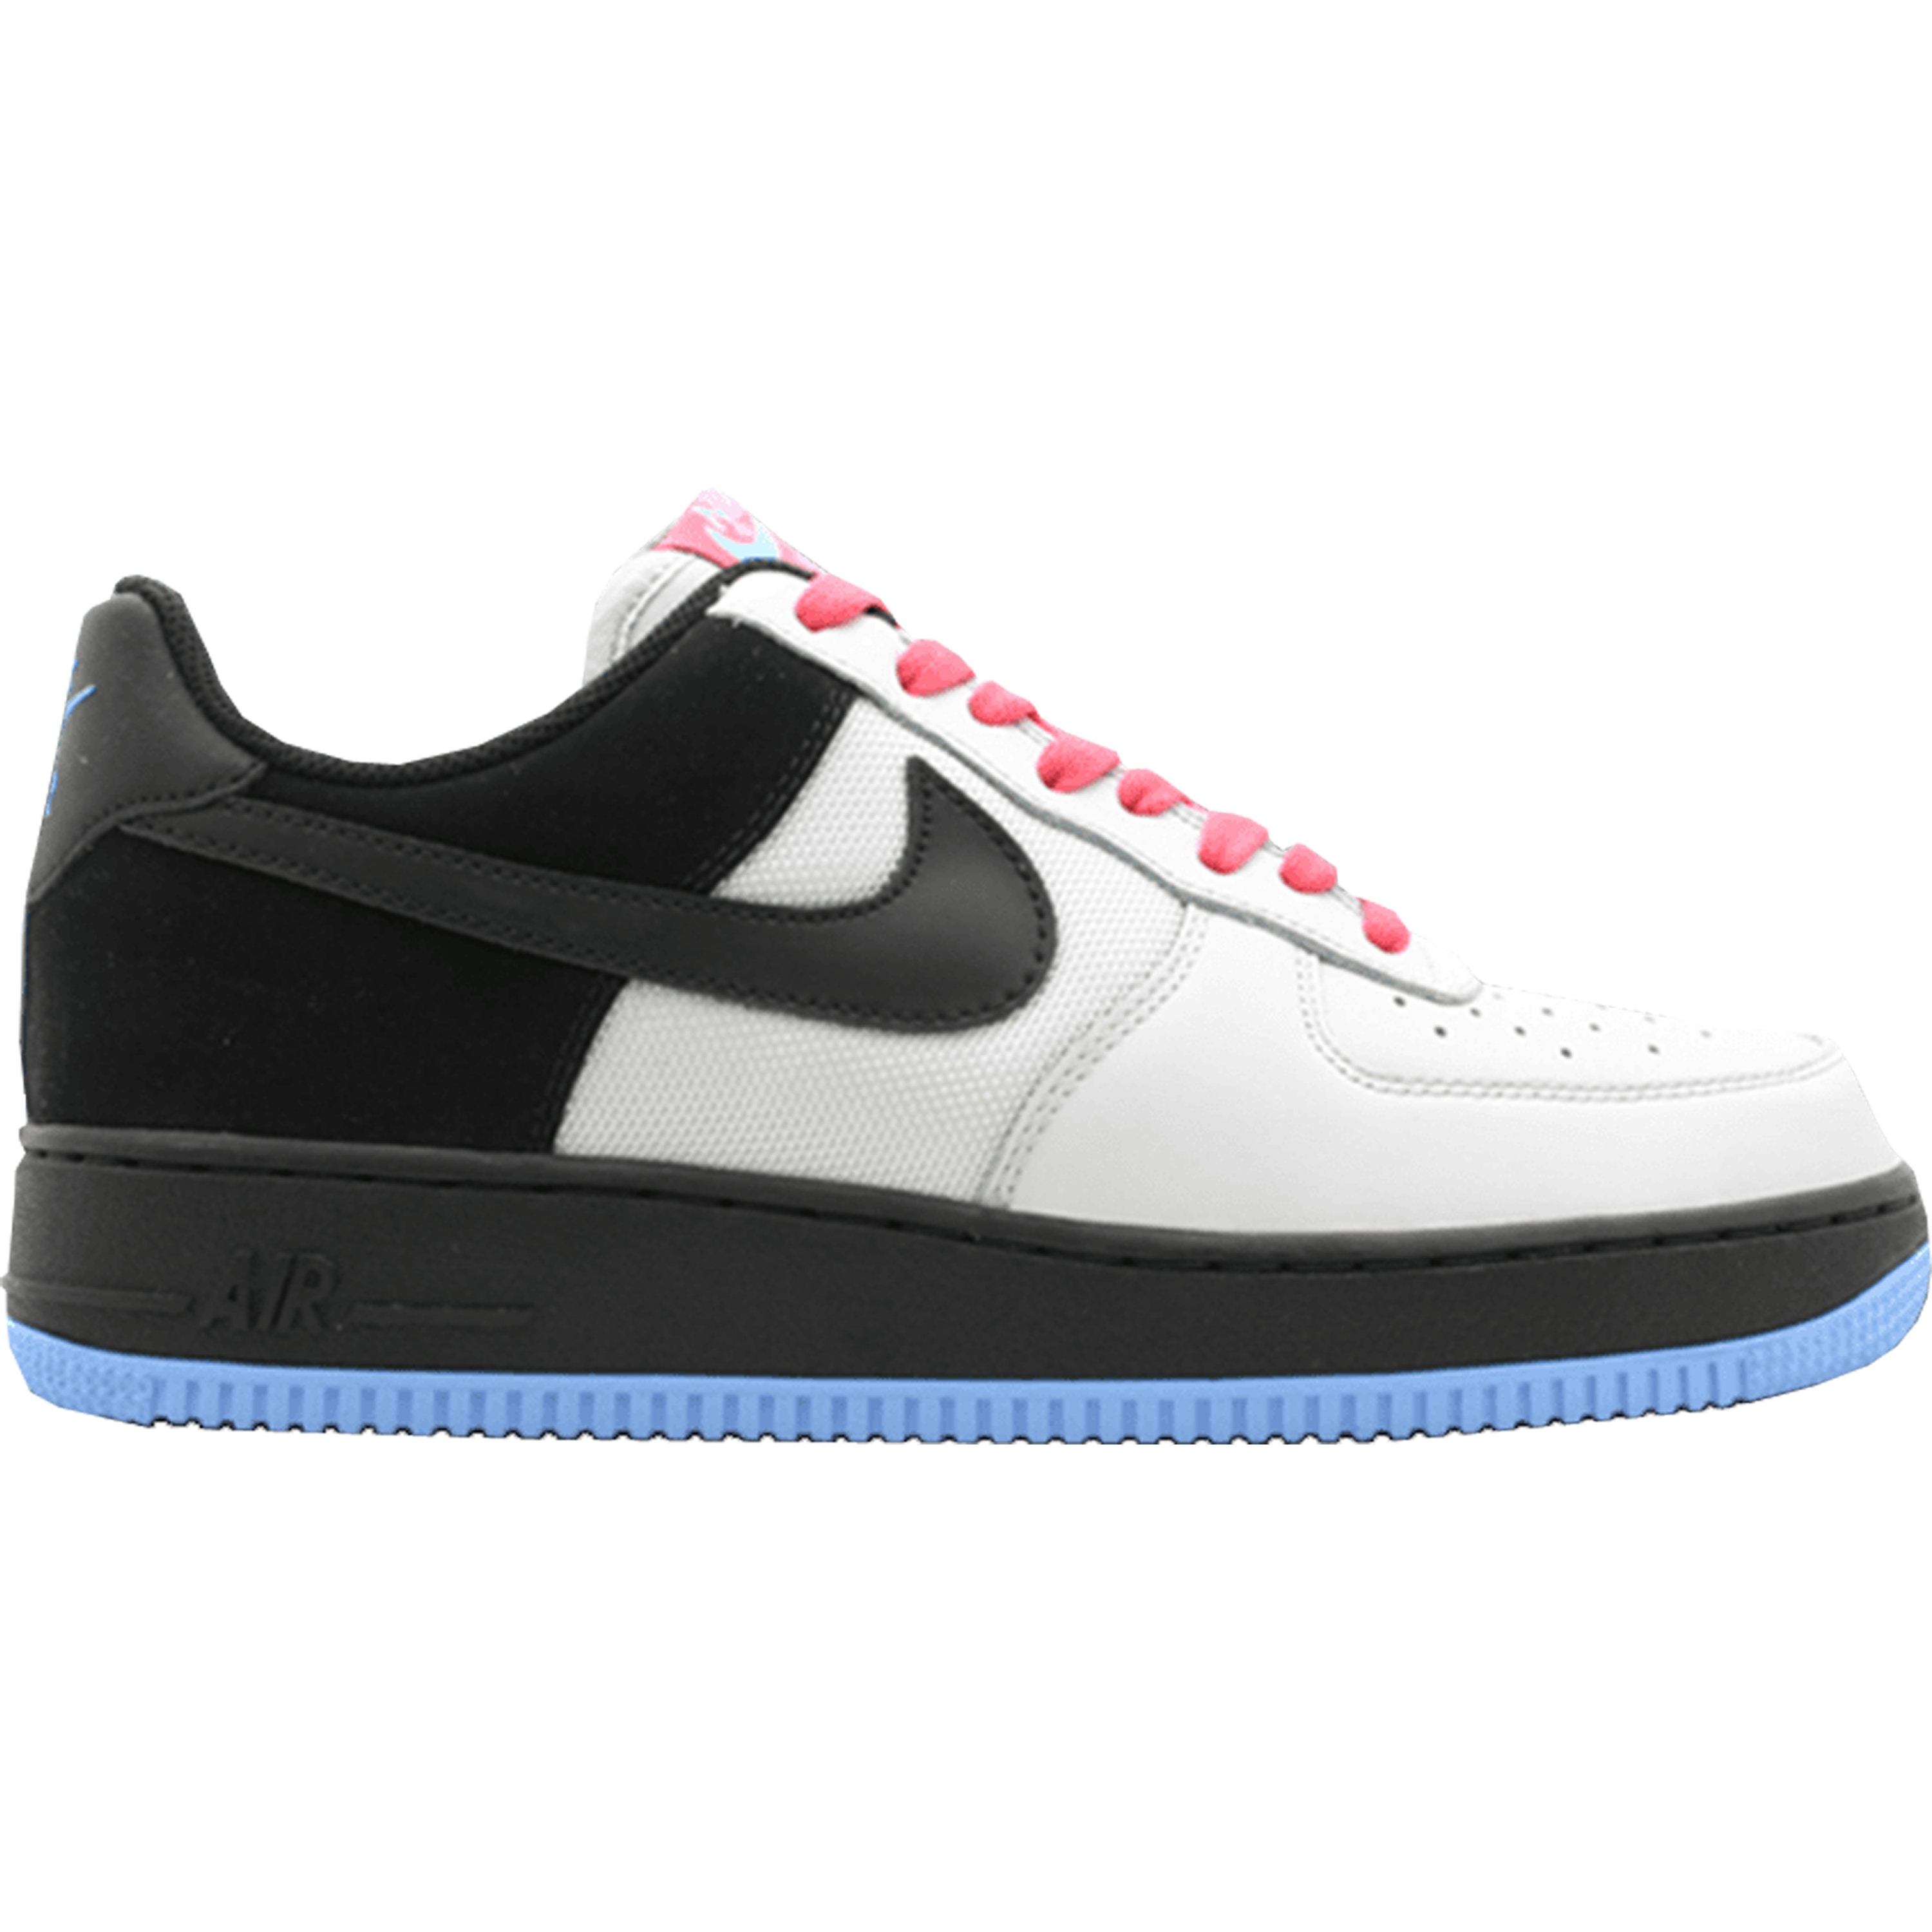 Nike Air Force 1 Low Grey Black Flamingo (315122-005)